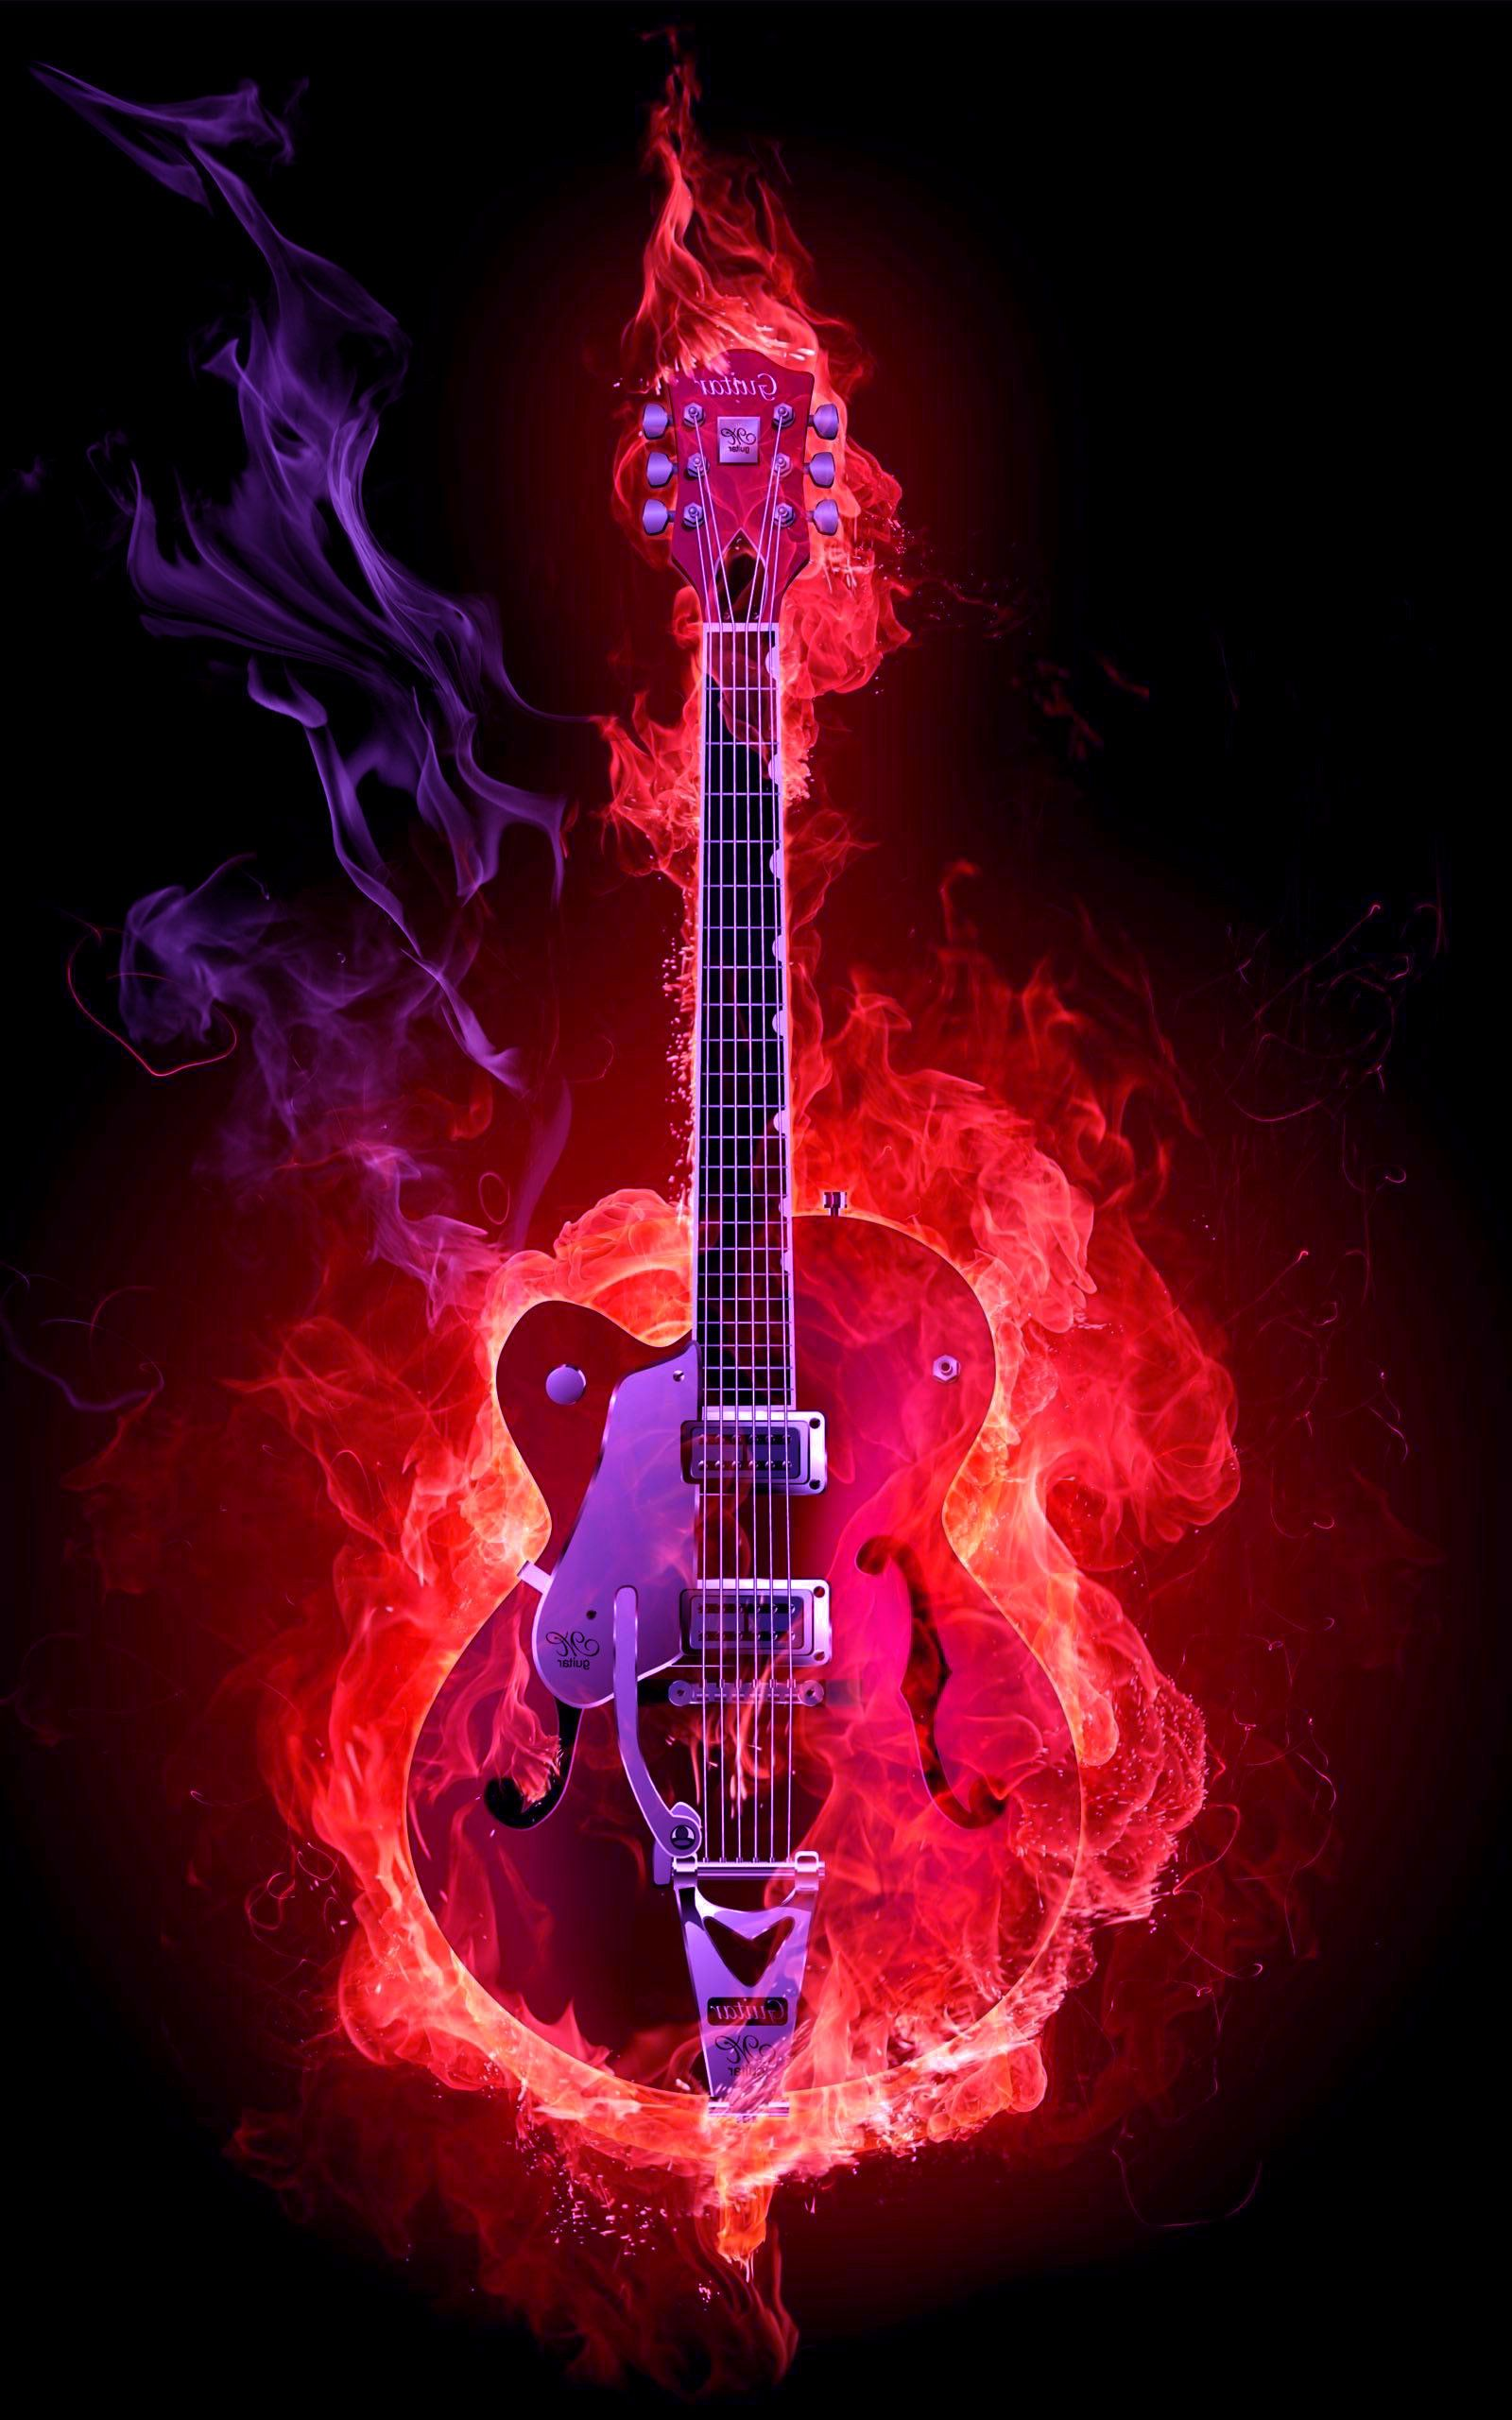 Flame Guitar Hd Wallpaper 1600 2560 High Definition Wallpaper Daily Screens Id 3331 Music Guitar Art Guitar Wall Art Music Artwork